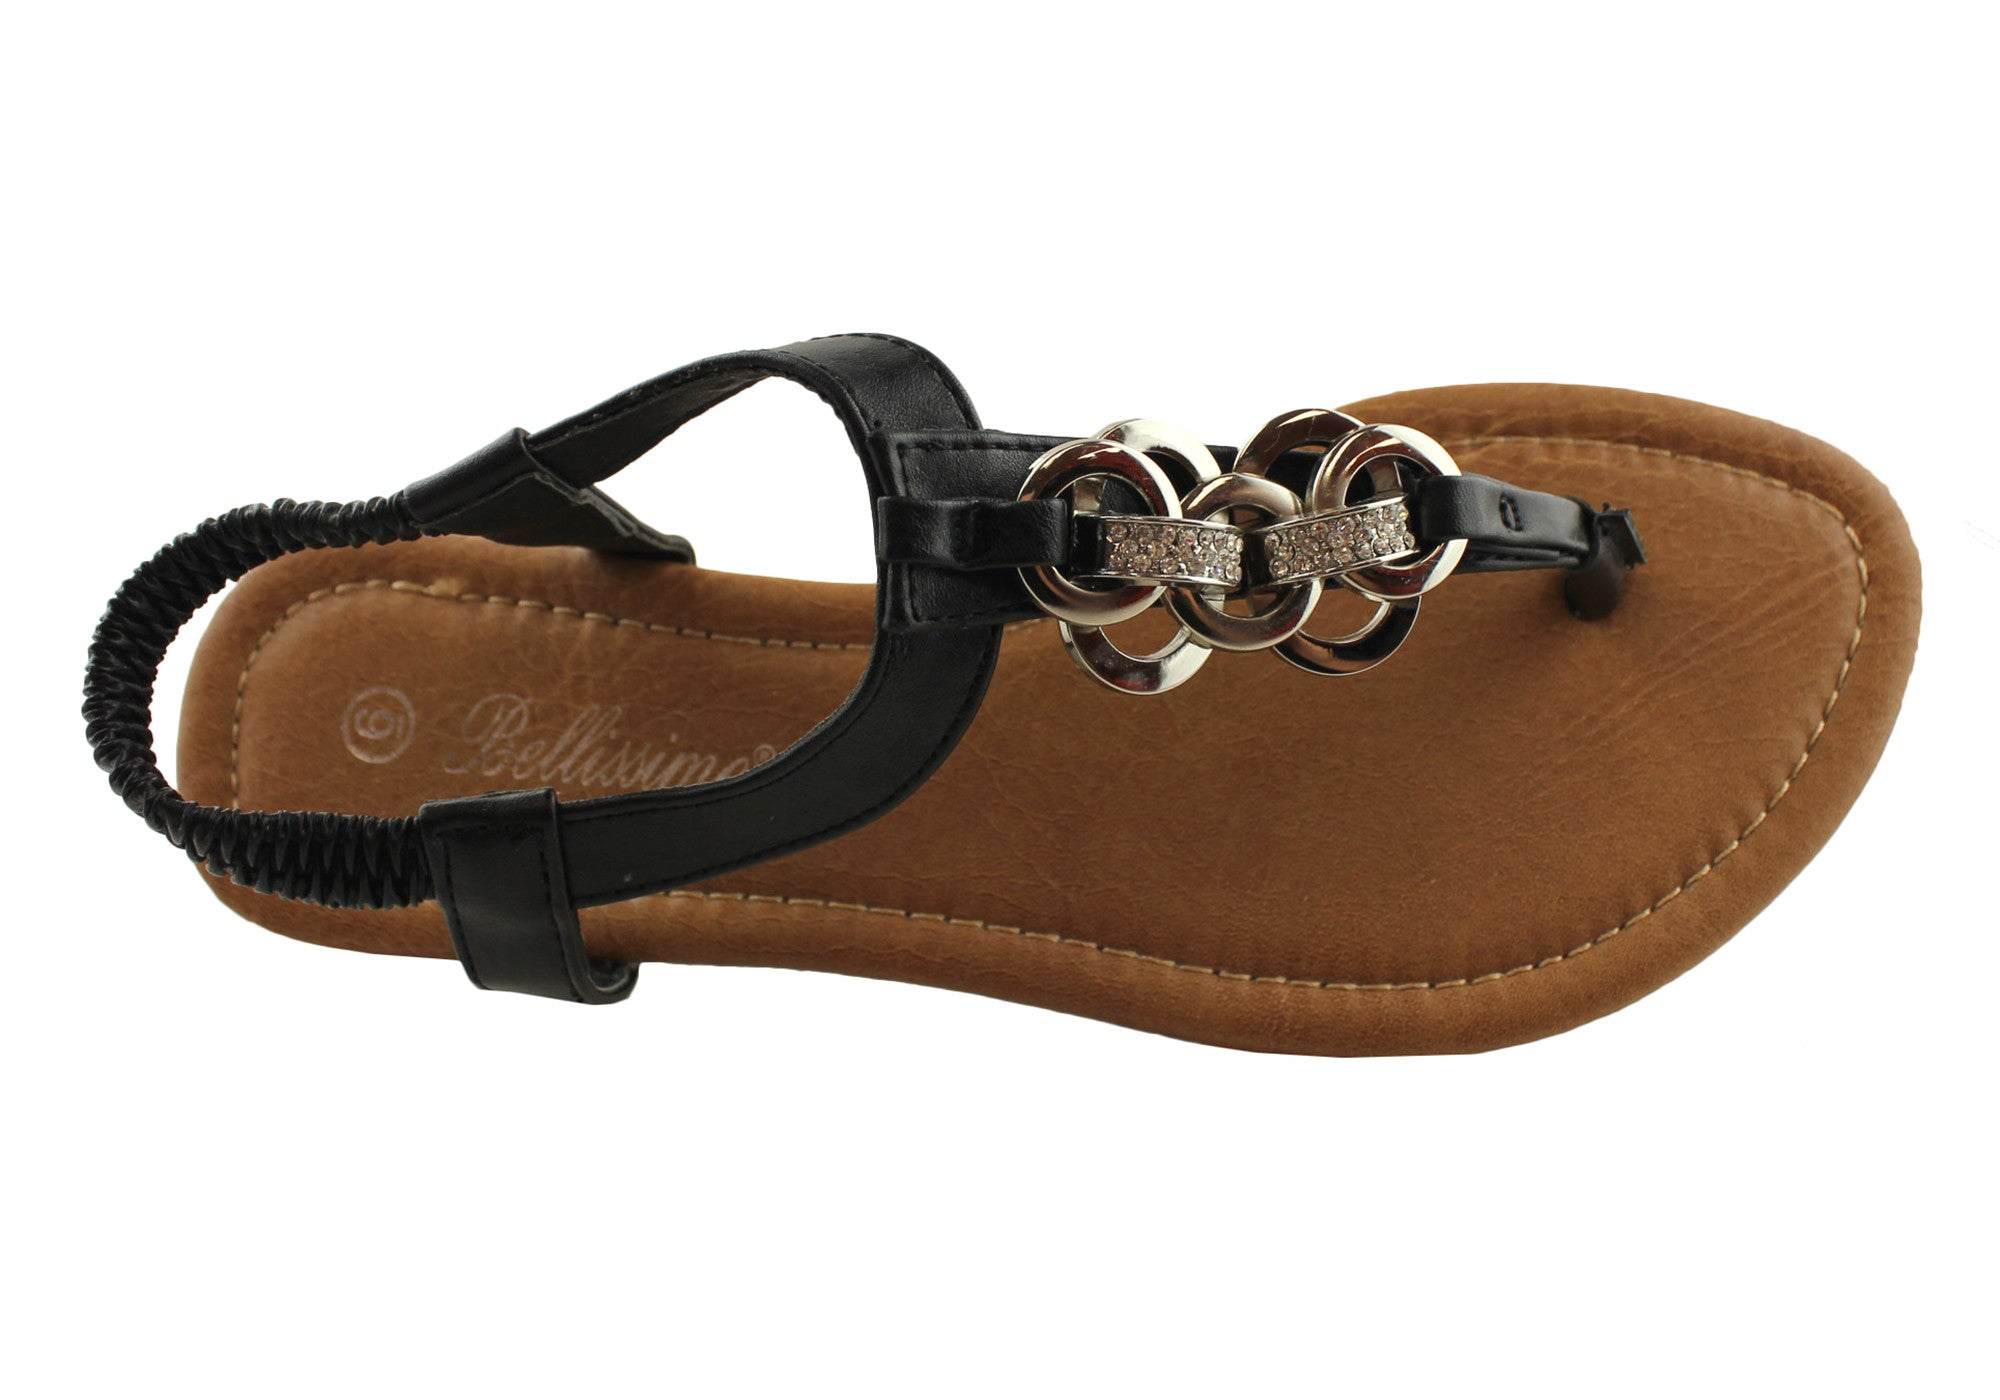 Bellissimo Link Womens Fashion Sandals Brand House Direct